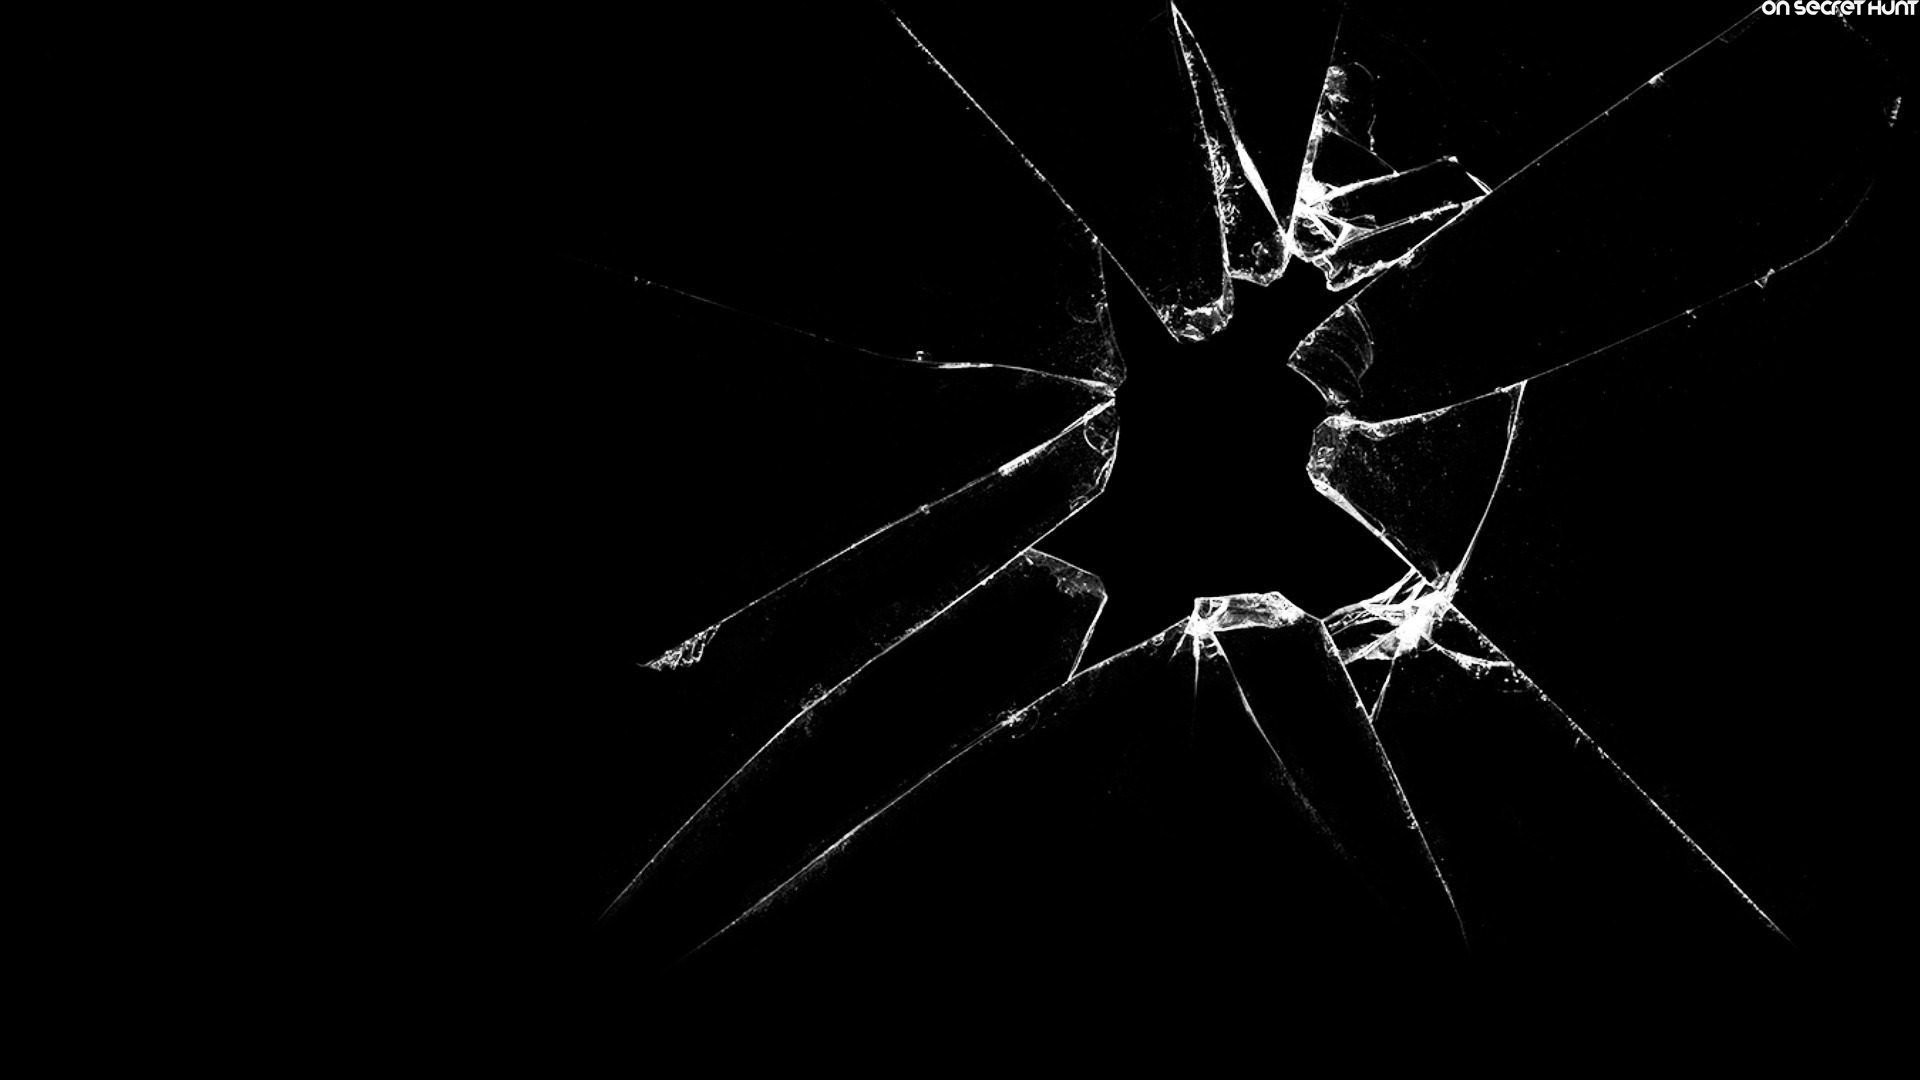 Res: 1920x1080, HD Wallpaper   Background Image ID:687706.  Technology Cracked  Screen